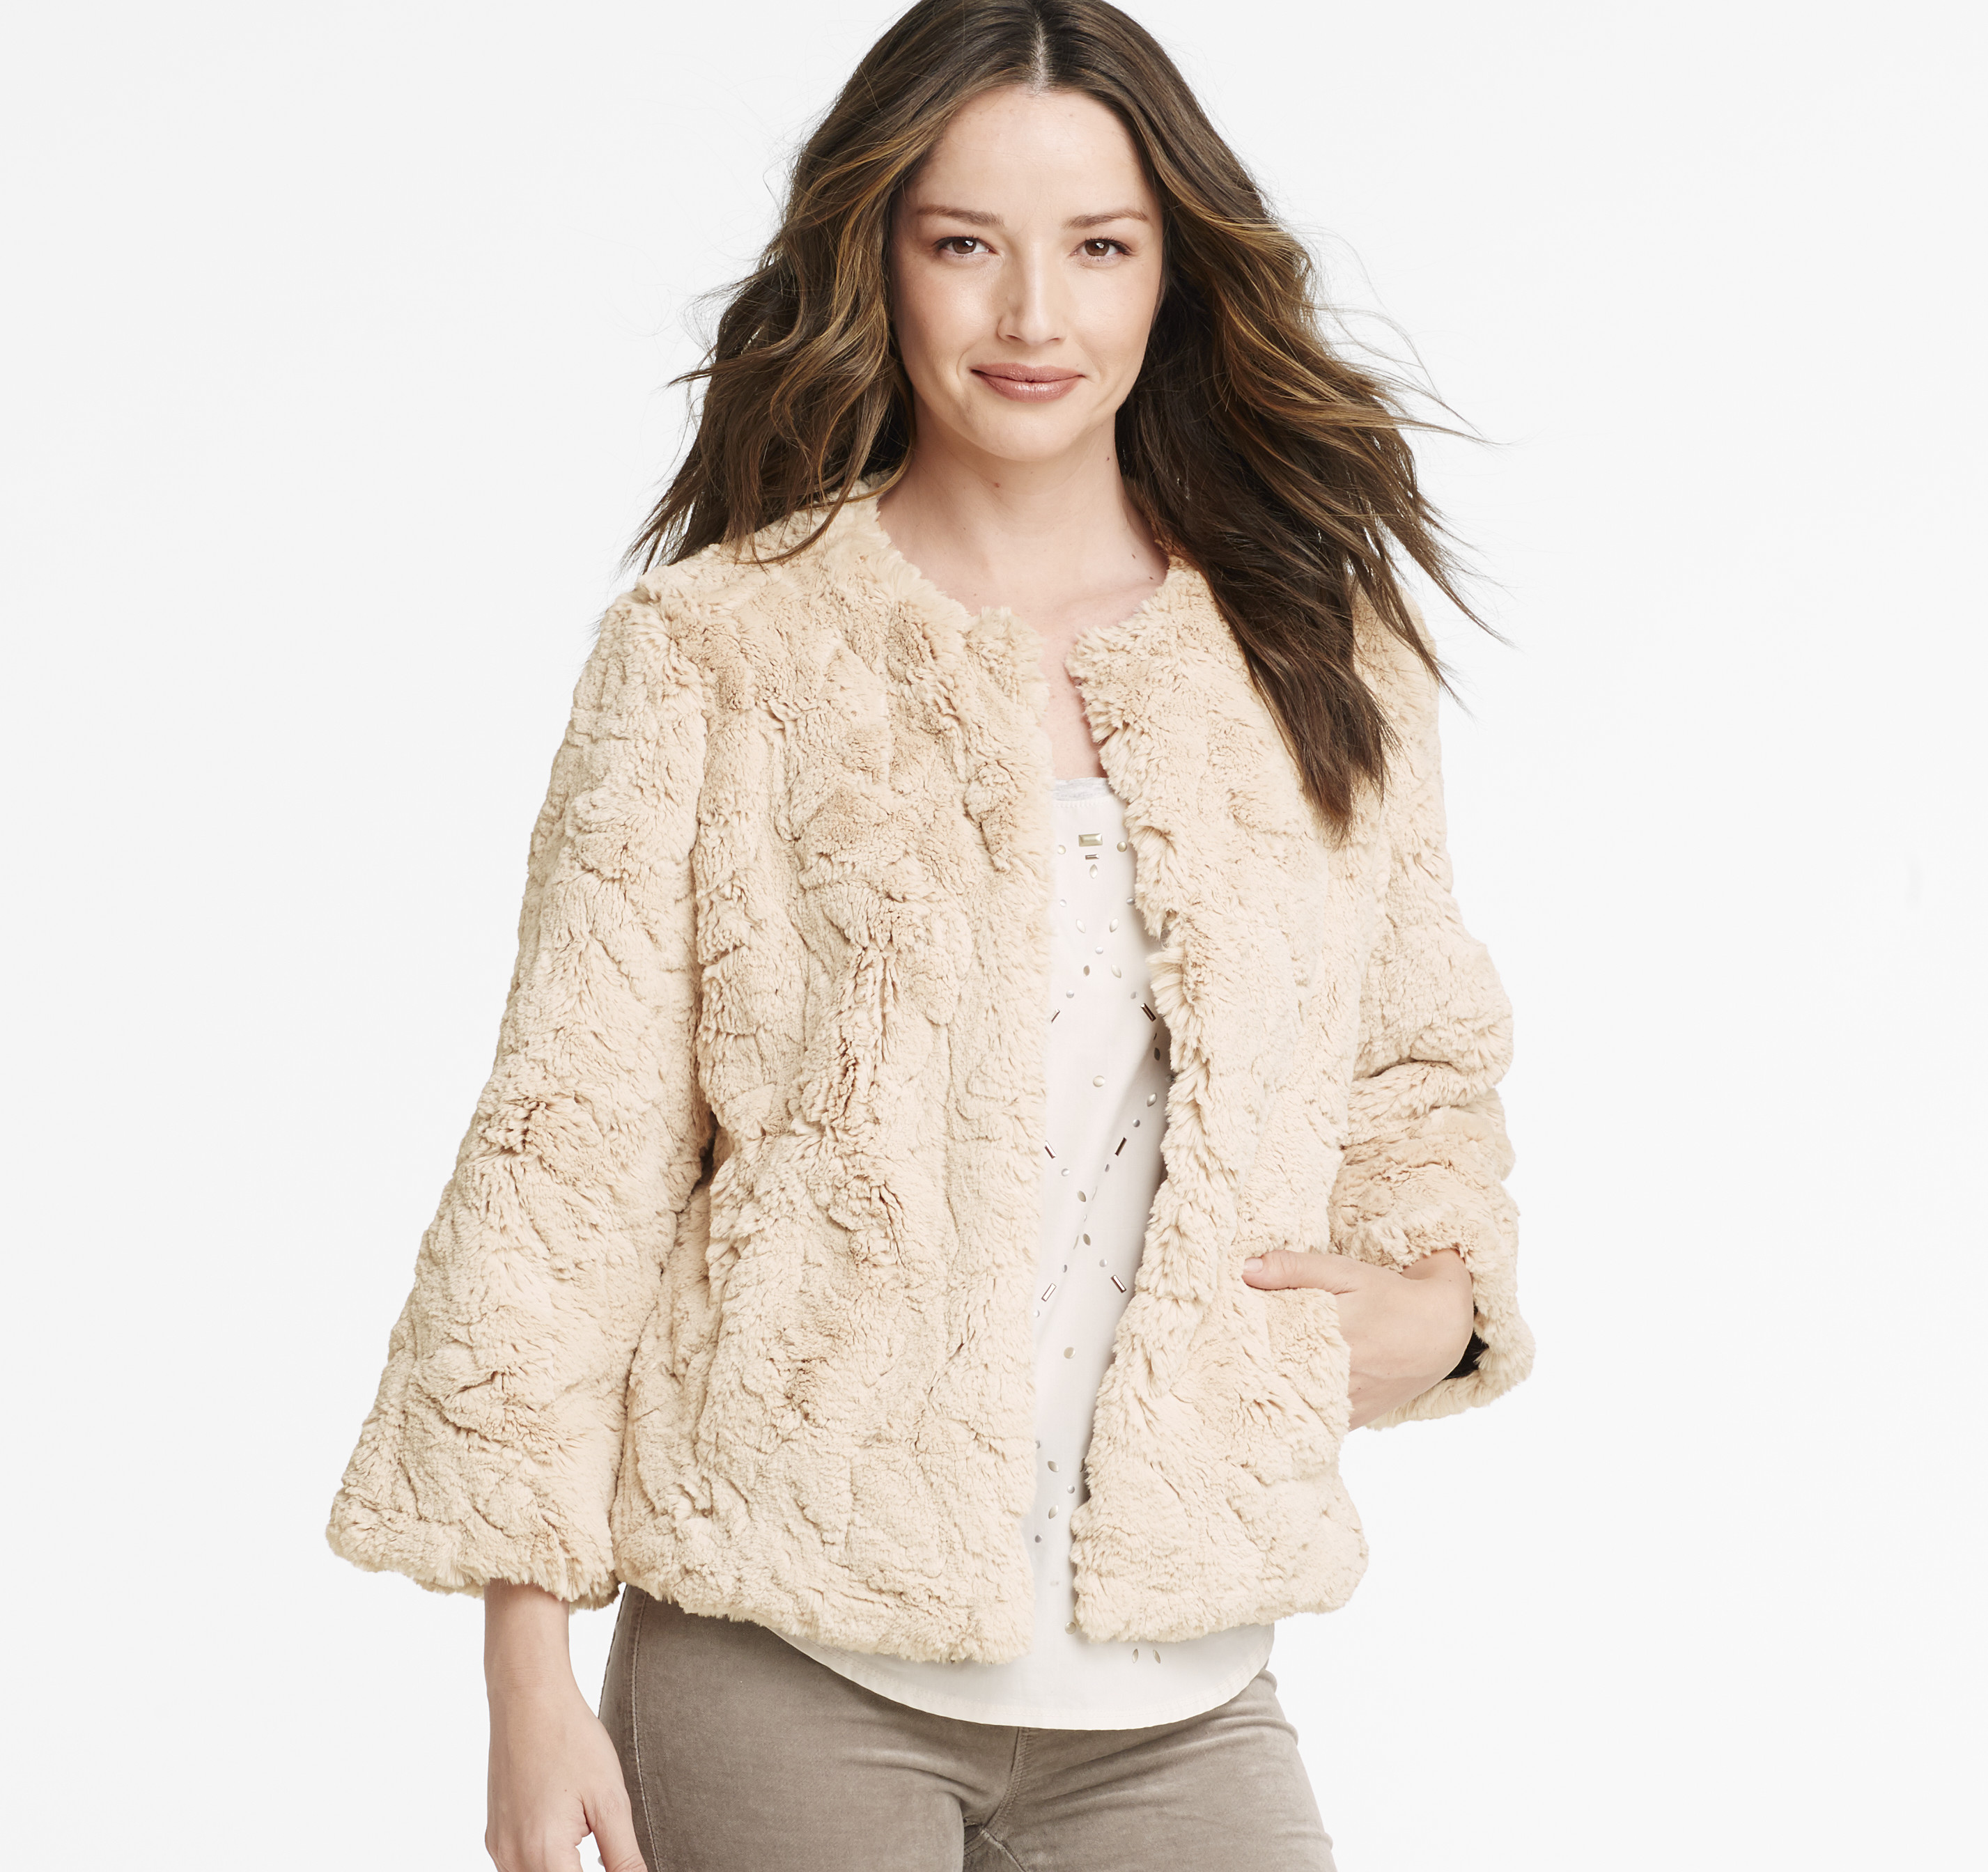 Faux-Fur Cropped Jacket is rated out of 5 by Rated 5 out of 5 by cbe from Icing on the cake This was perfect to finish off my Granddaughters dressy outfit to attend a Christmas play.